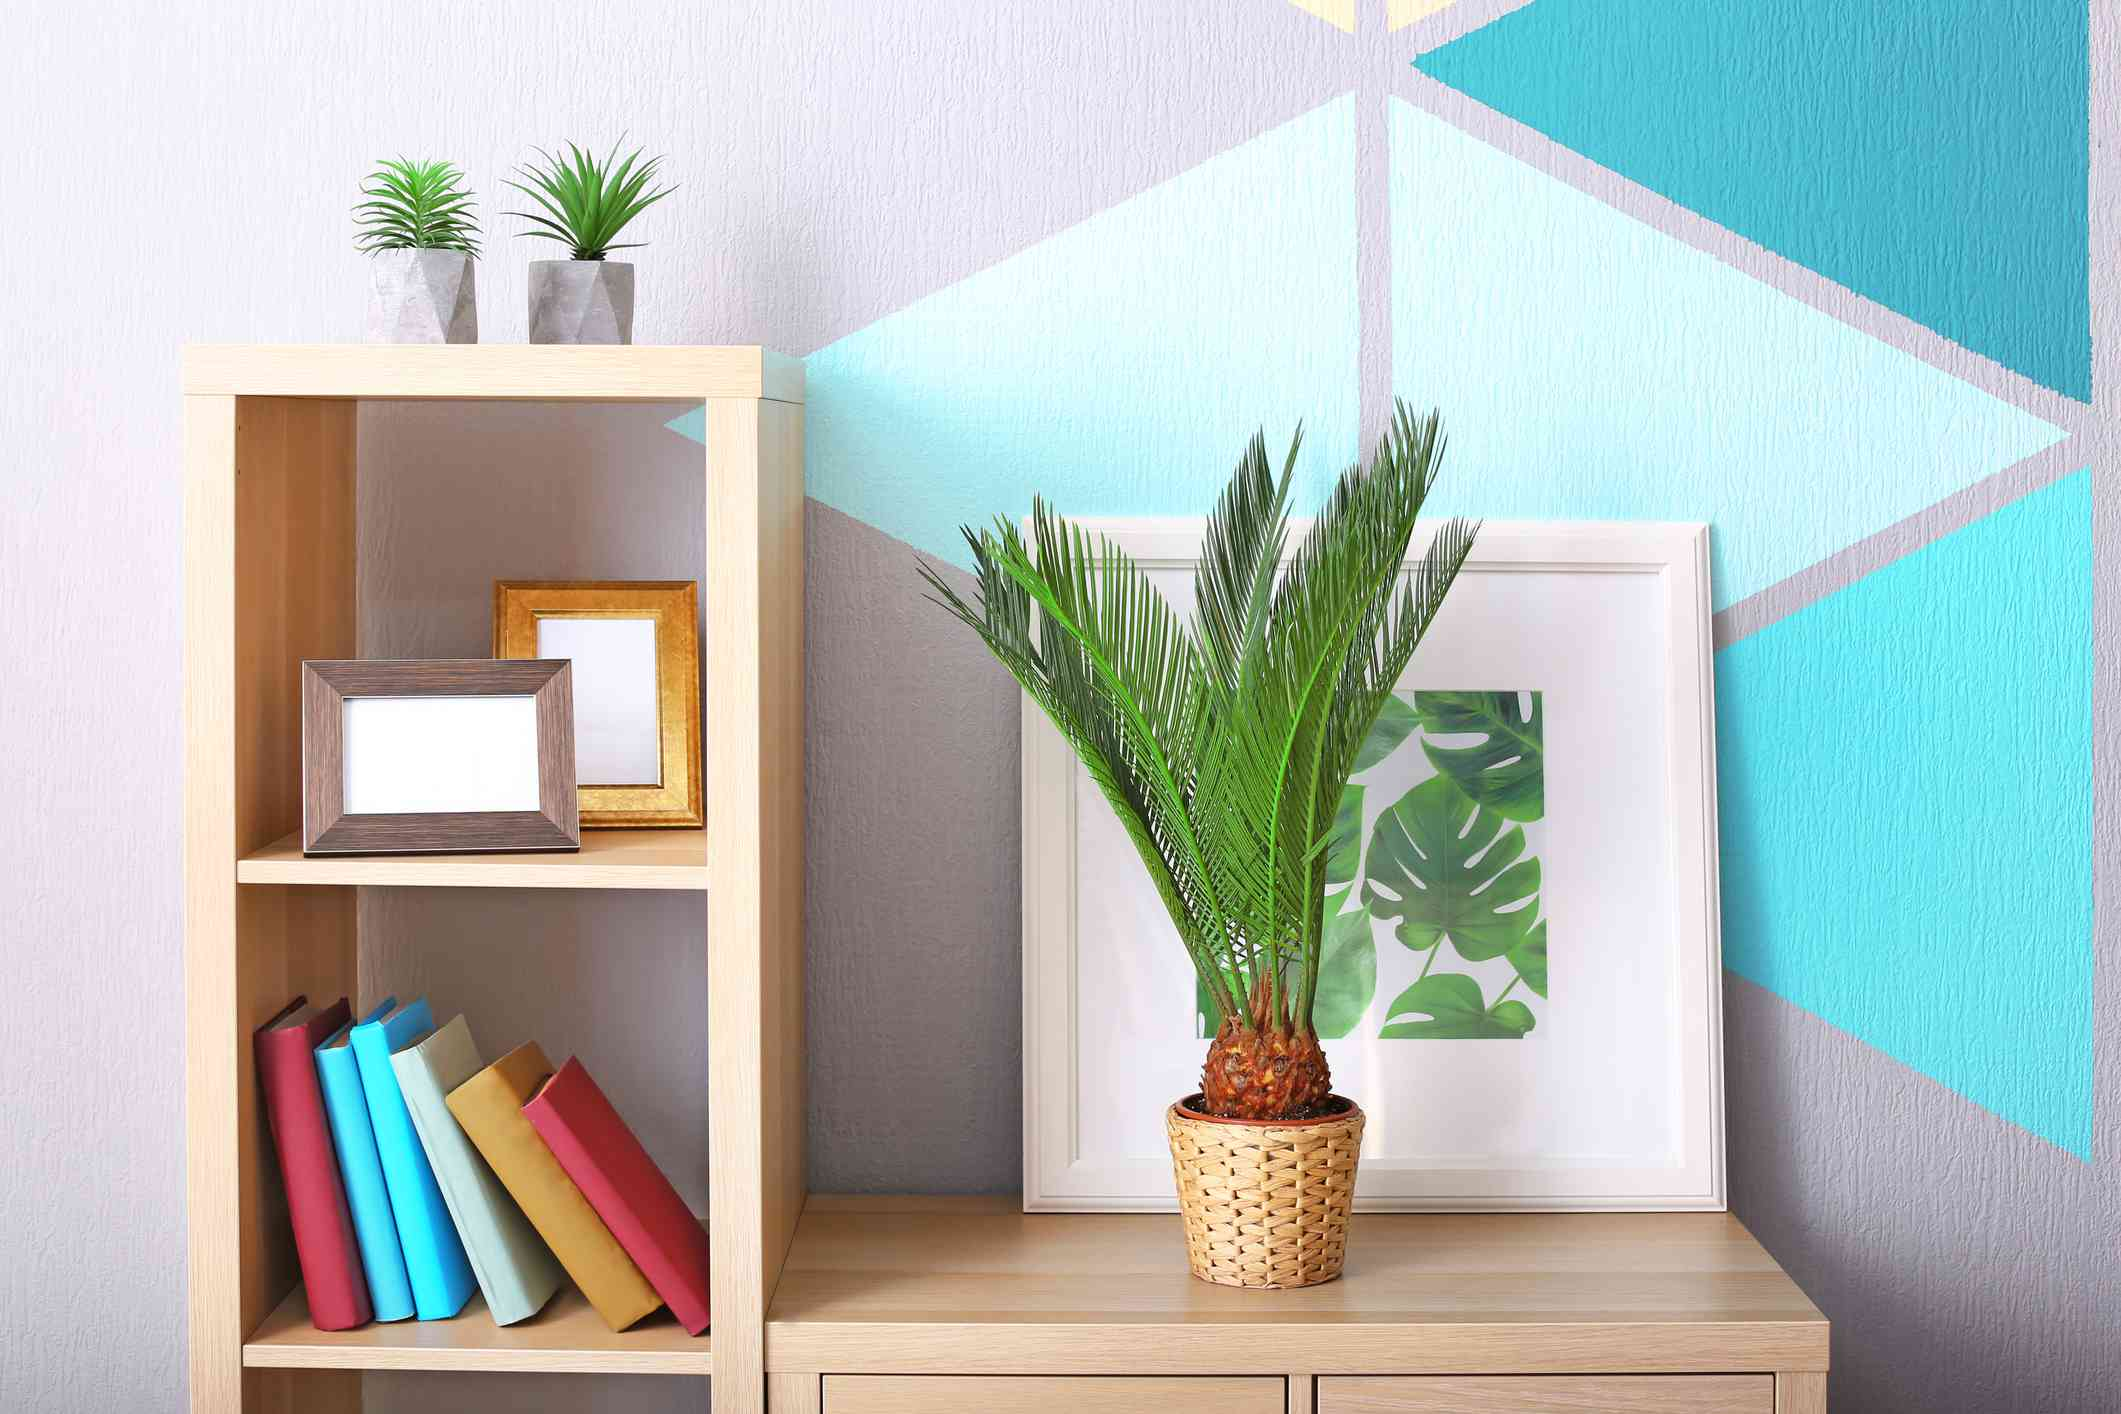 A sago palm sits on a wooden shelf in front of a framed photo.